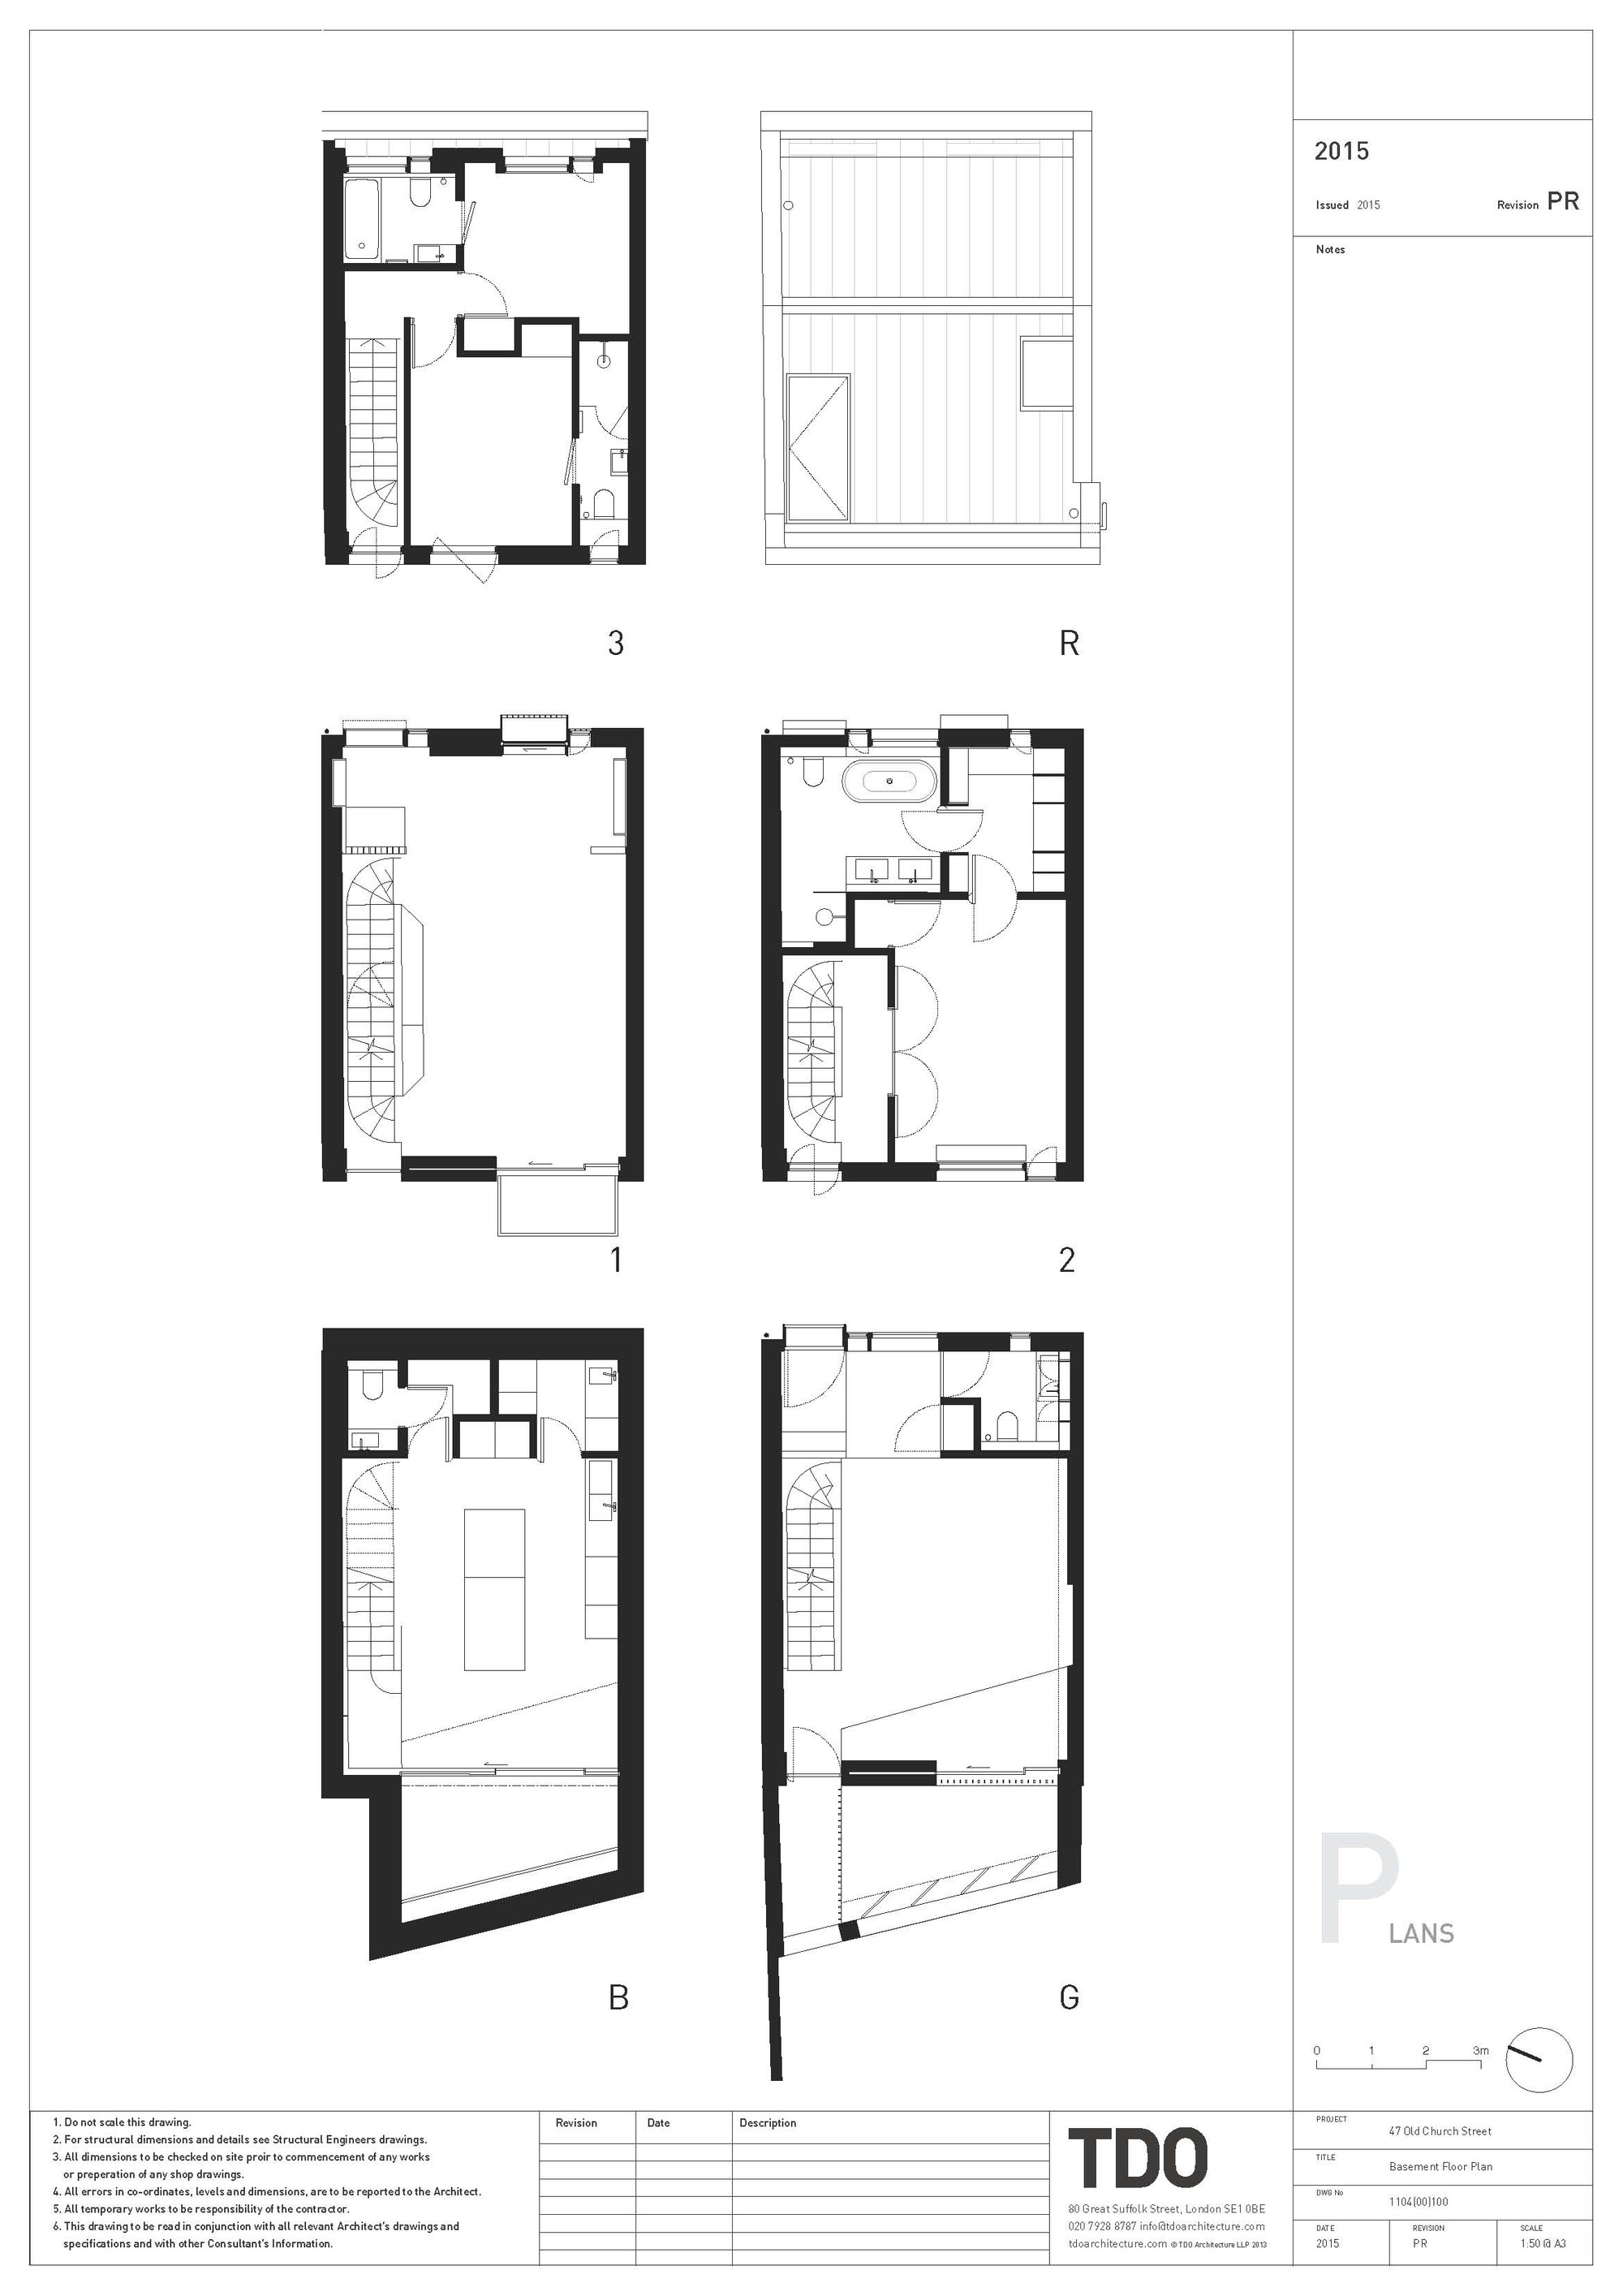 Modern Home Plans 1955 Vintage together with Small Country Style House Plans together with 6 Bedroom House Plans as well 800 Sq Ft in addition 1000 Sq Ft House Plans 3 Bedroom Kerala Style. on modern architecture homes in nigeria